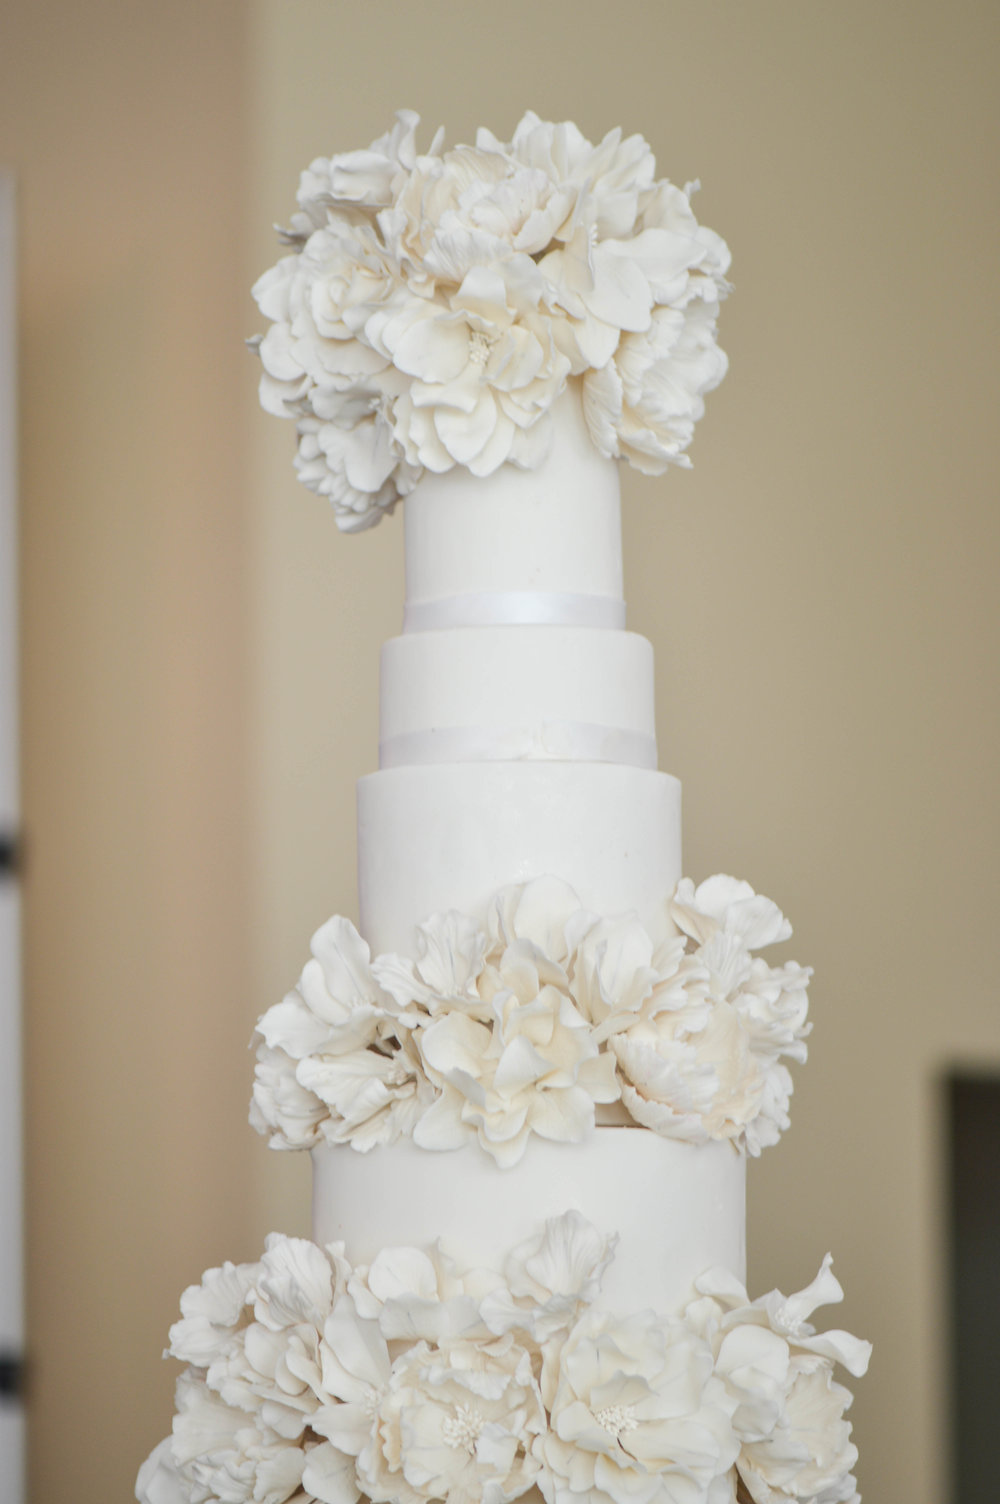 The Wonder of White - The cake featured hundreds of hand-made sugar flowers that totalled over 100 hours to create.